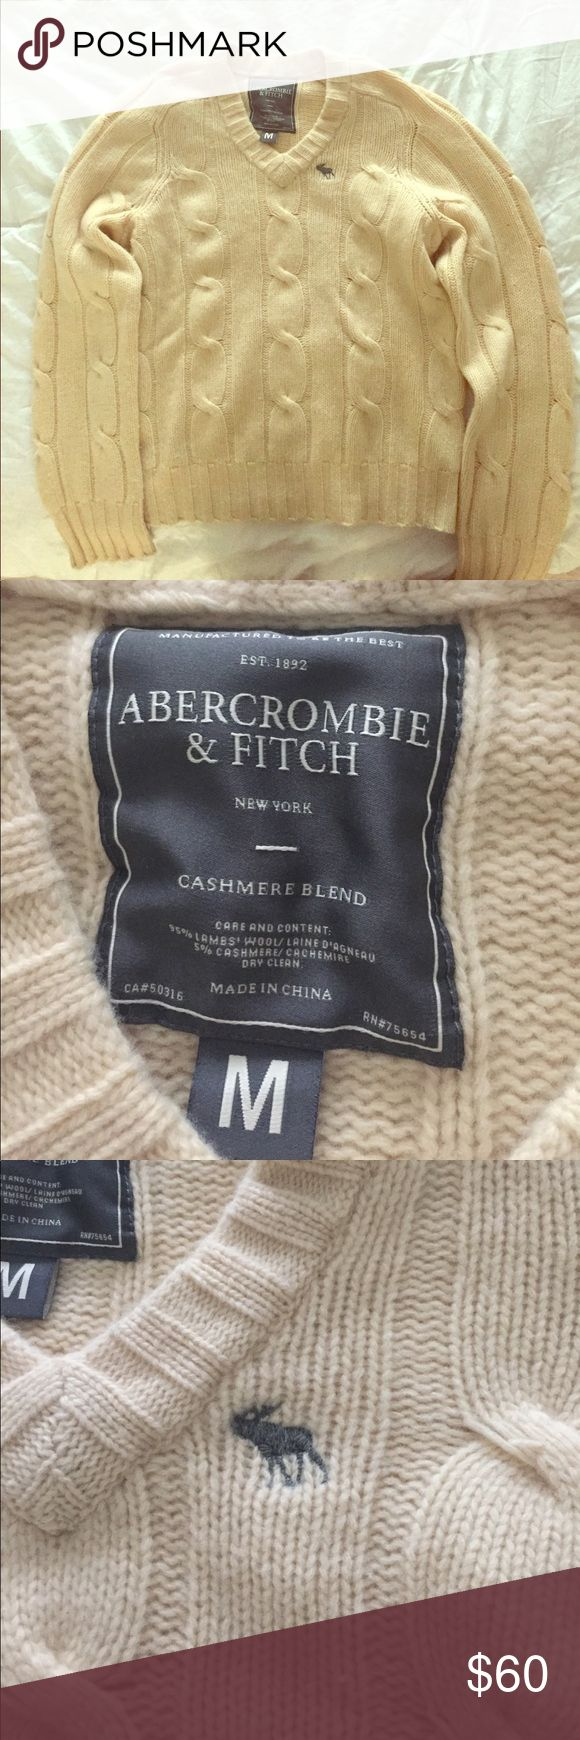 Abercrombie & Fitch men's v neck sweater in Medium Like new ! Worn only once. Beautiful Abercrombie and Fitch V-neck men's sweater in size Medium. Cashmere blend! Soft, warm, and breathable ! 95% lambs wool and 5% cashmere blend. Perfect for winter ❄️and the holidays coming up 😀 Let me know if you have any questions ! Abercrombie & Fitch Sweaters V-Neck